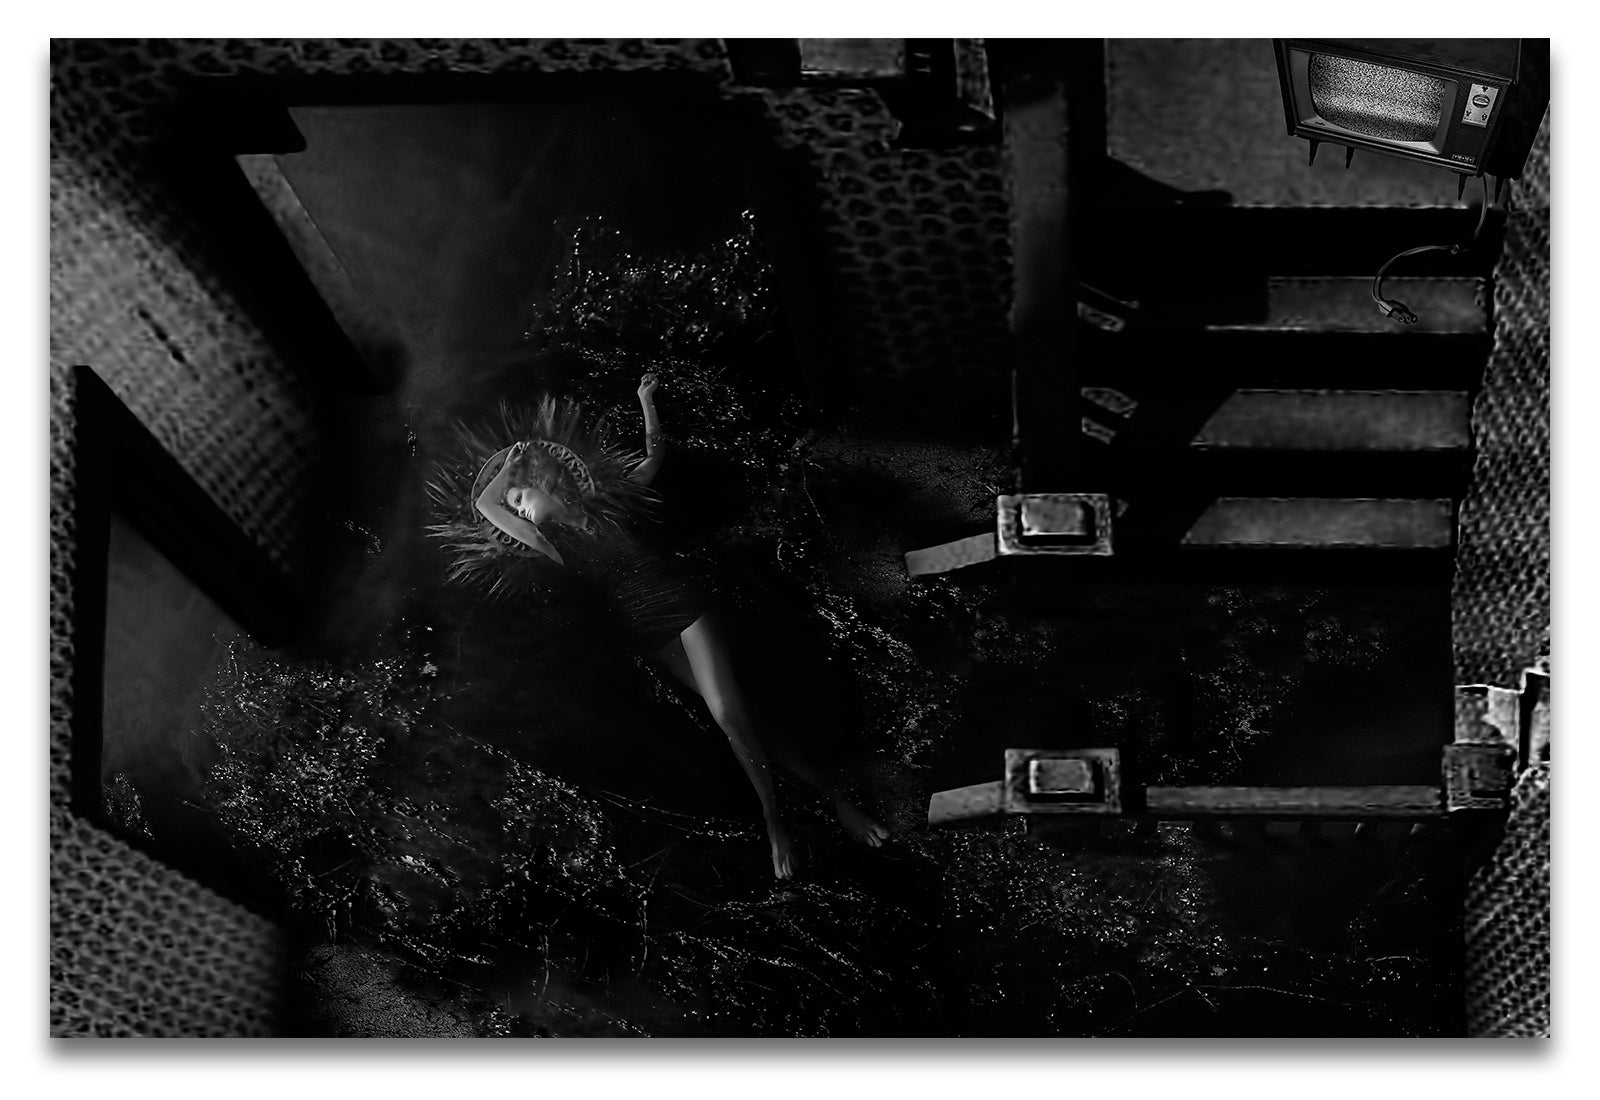 Horizontal Black & White Portrait of a Woman Being Baptized in the Whole First Floor of a House-Metal Print-Aluminum Print